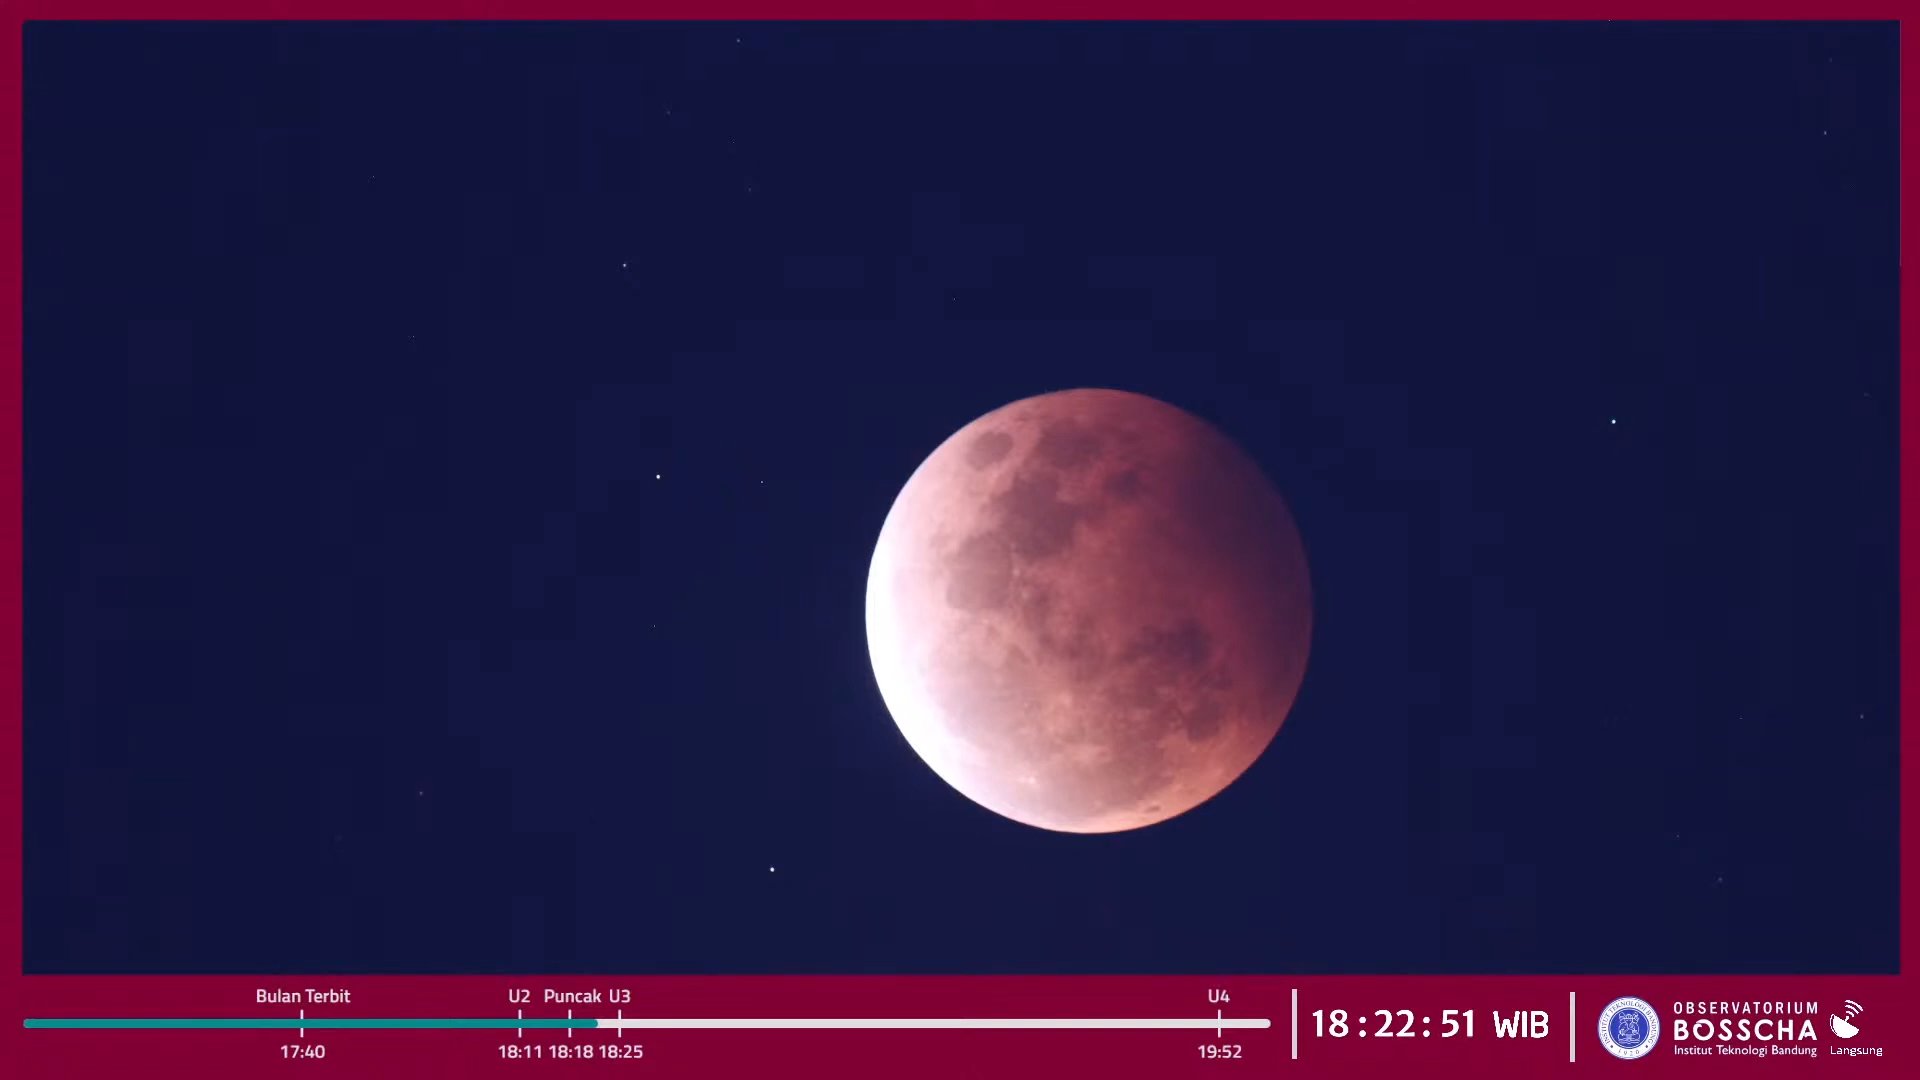 Total Lunar Eclipse Observation by Bosscha Observatory: A Privilege that Cannot be Missed